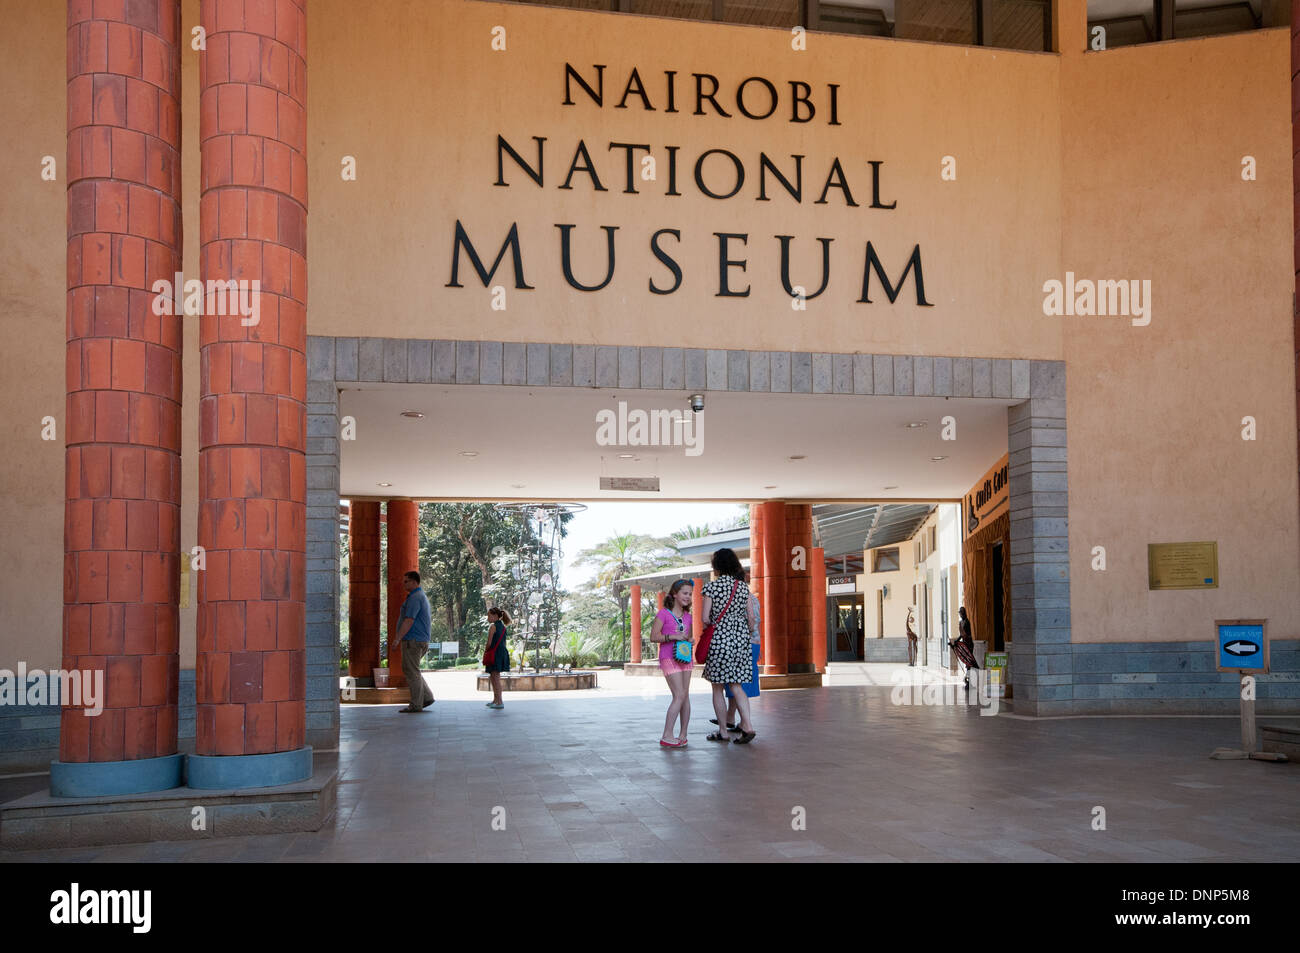 White Caucasian family of adults and children entering the main entrance of the Nairobi National Museum - Stock Image